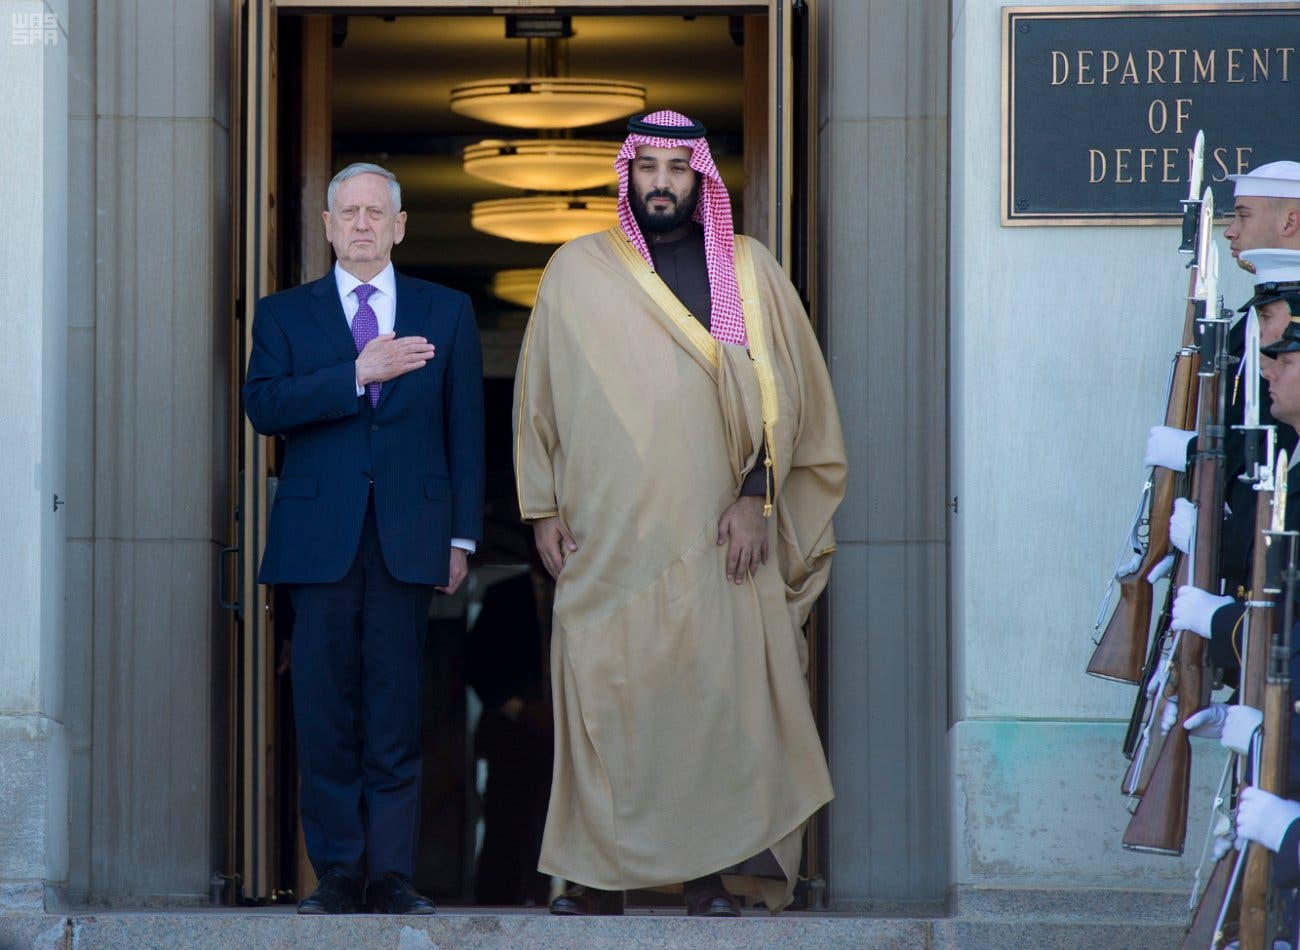 Saudi Arabia's Deputy Crown Prince Mohammed bin Salman bin Abdulaziz Al Saud arrived to Washington on Tuesday for a meeting with US President Donald Trump.